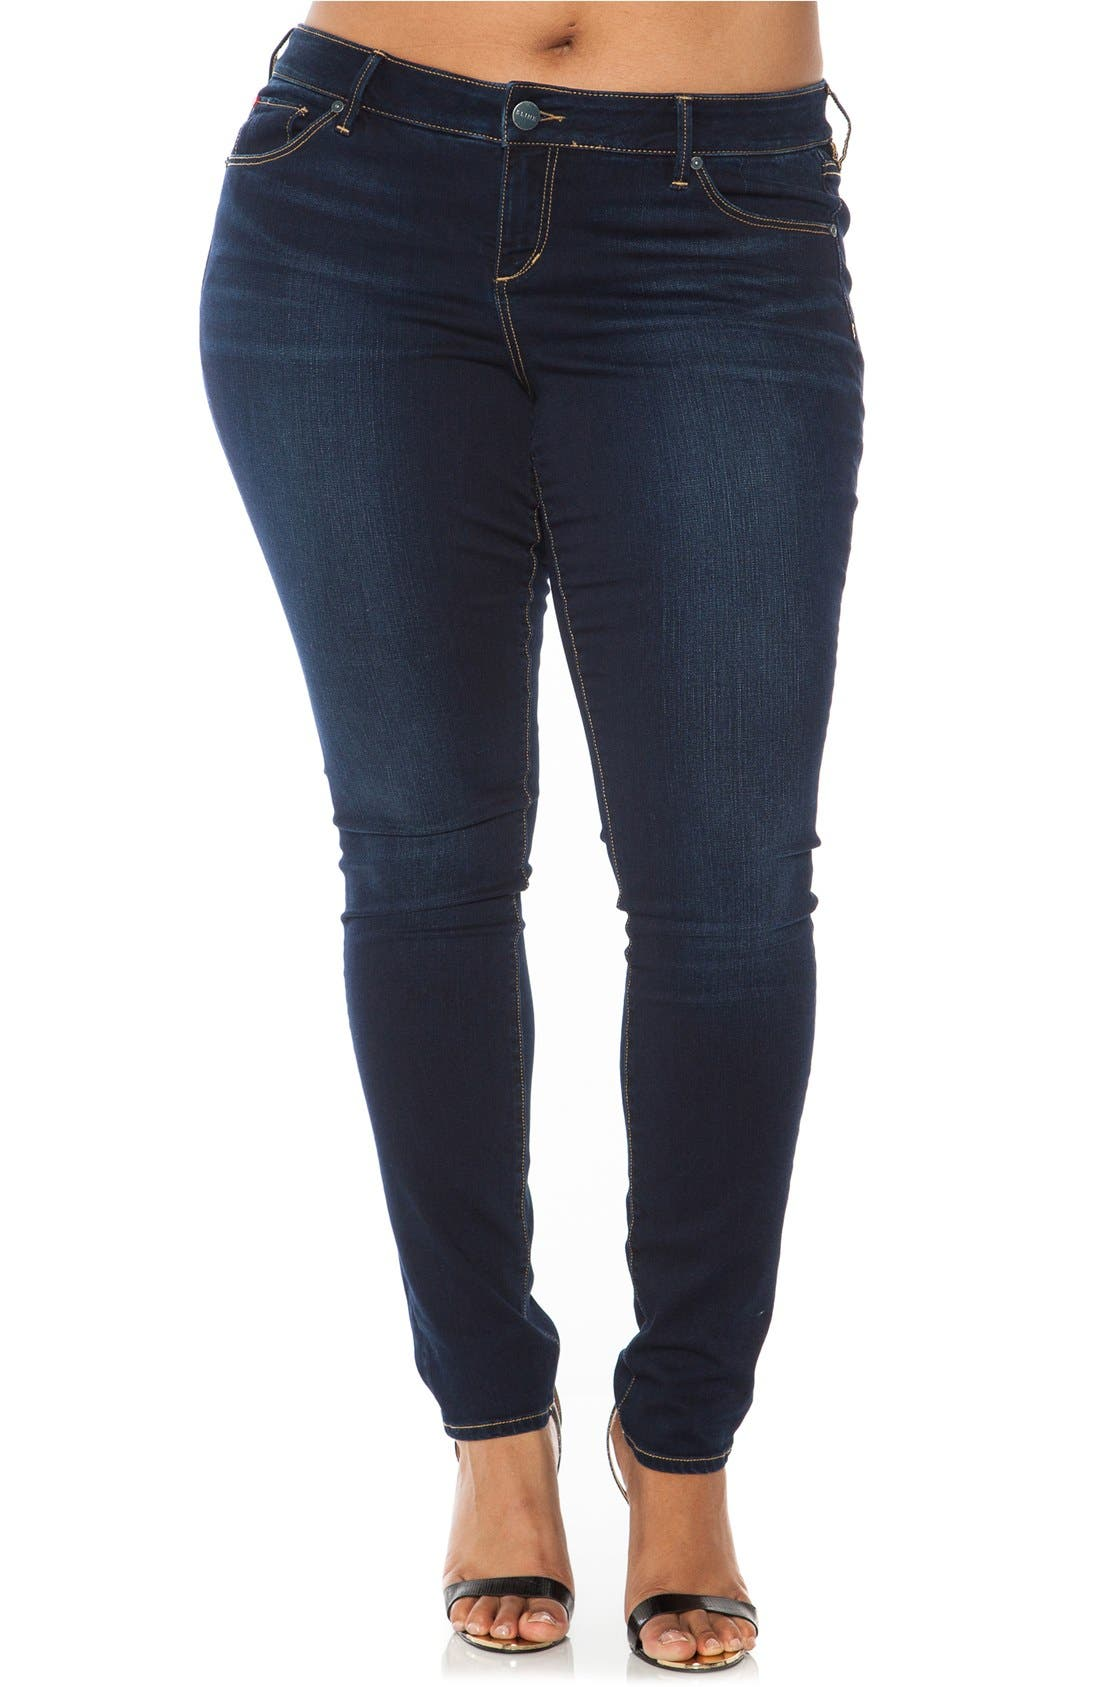 'The Skinny' Stretch Denim Jeans,                         Main,                         color, AMBER